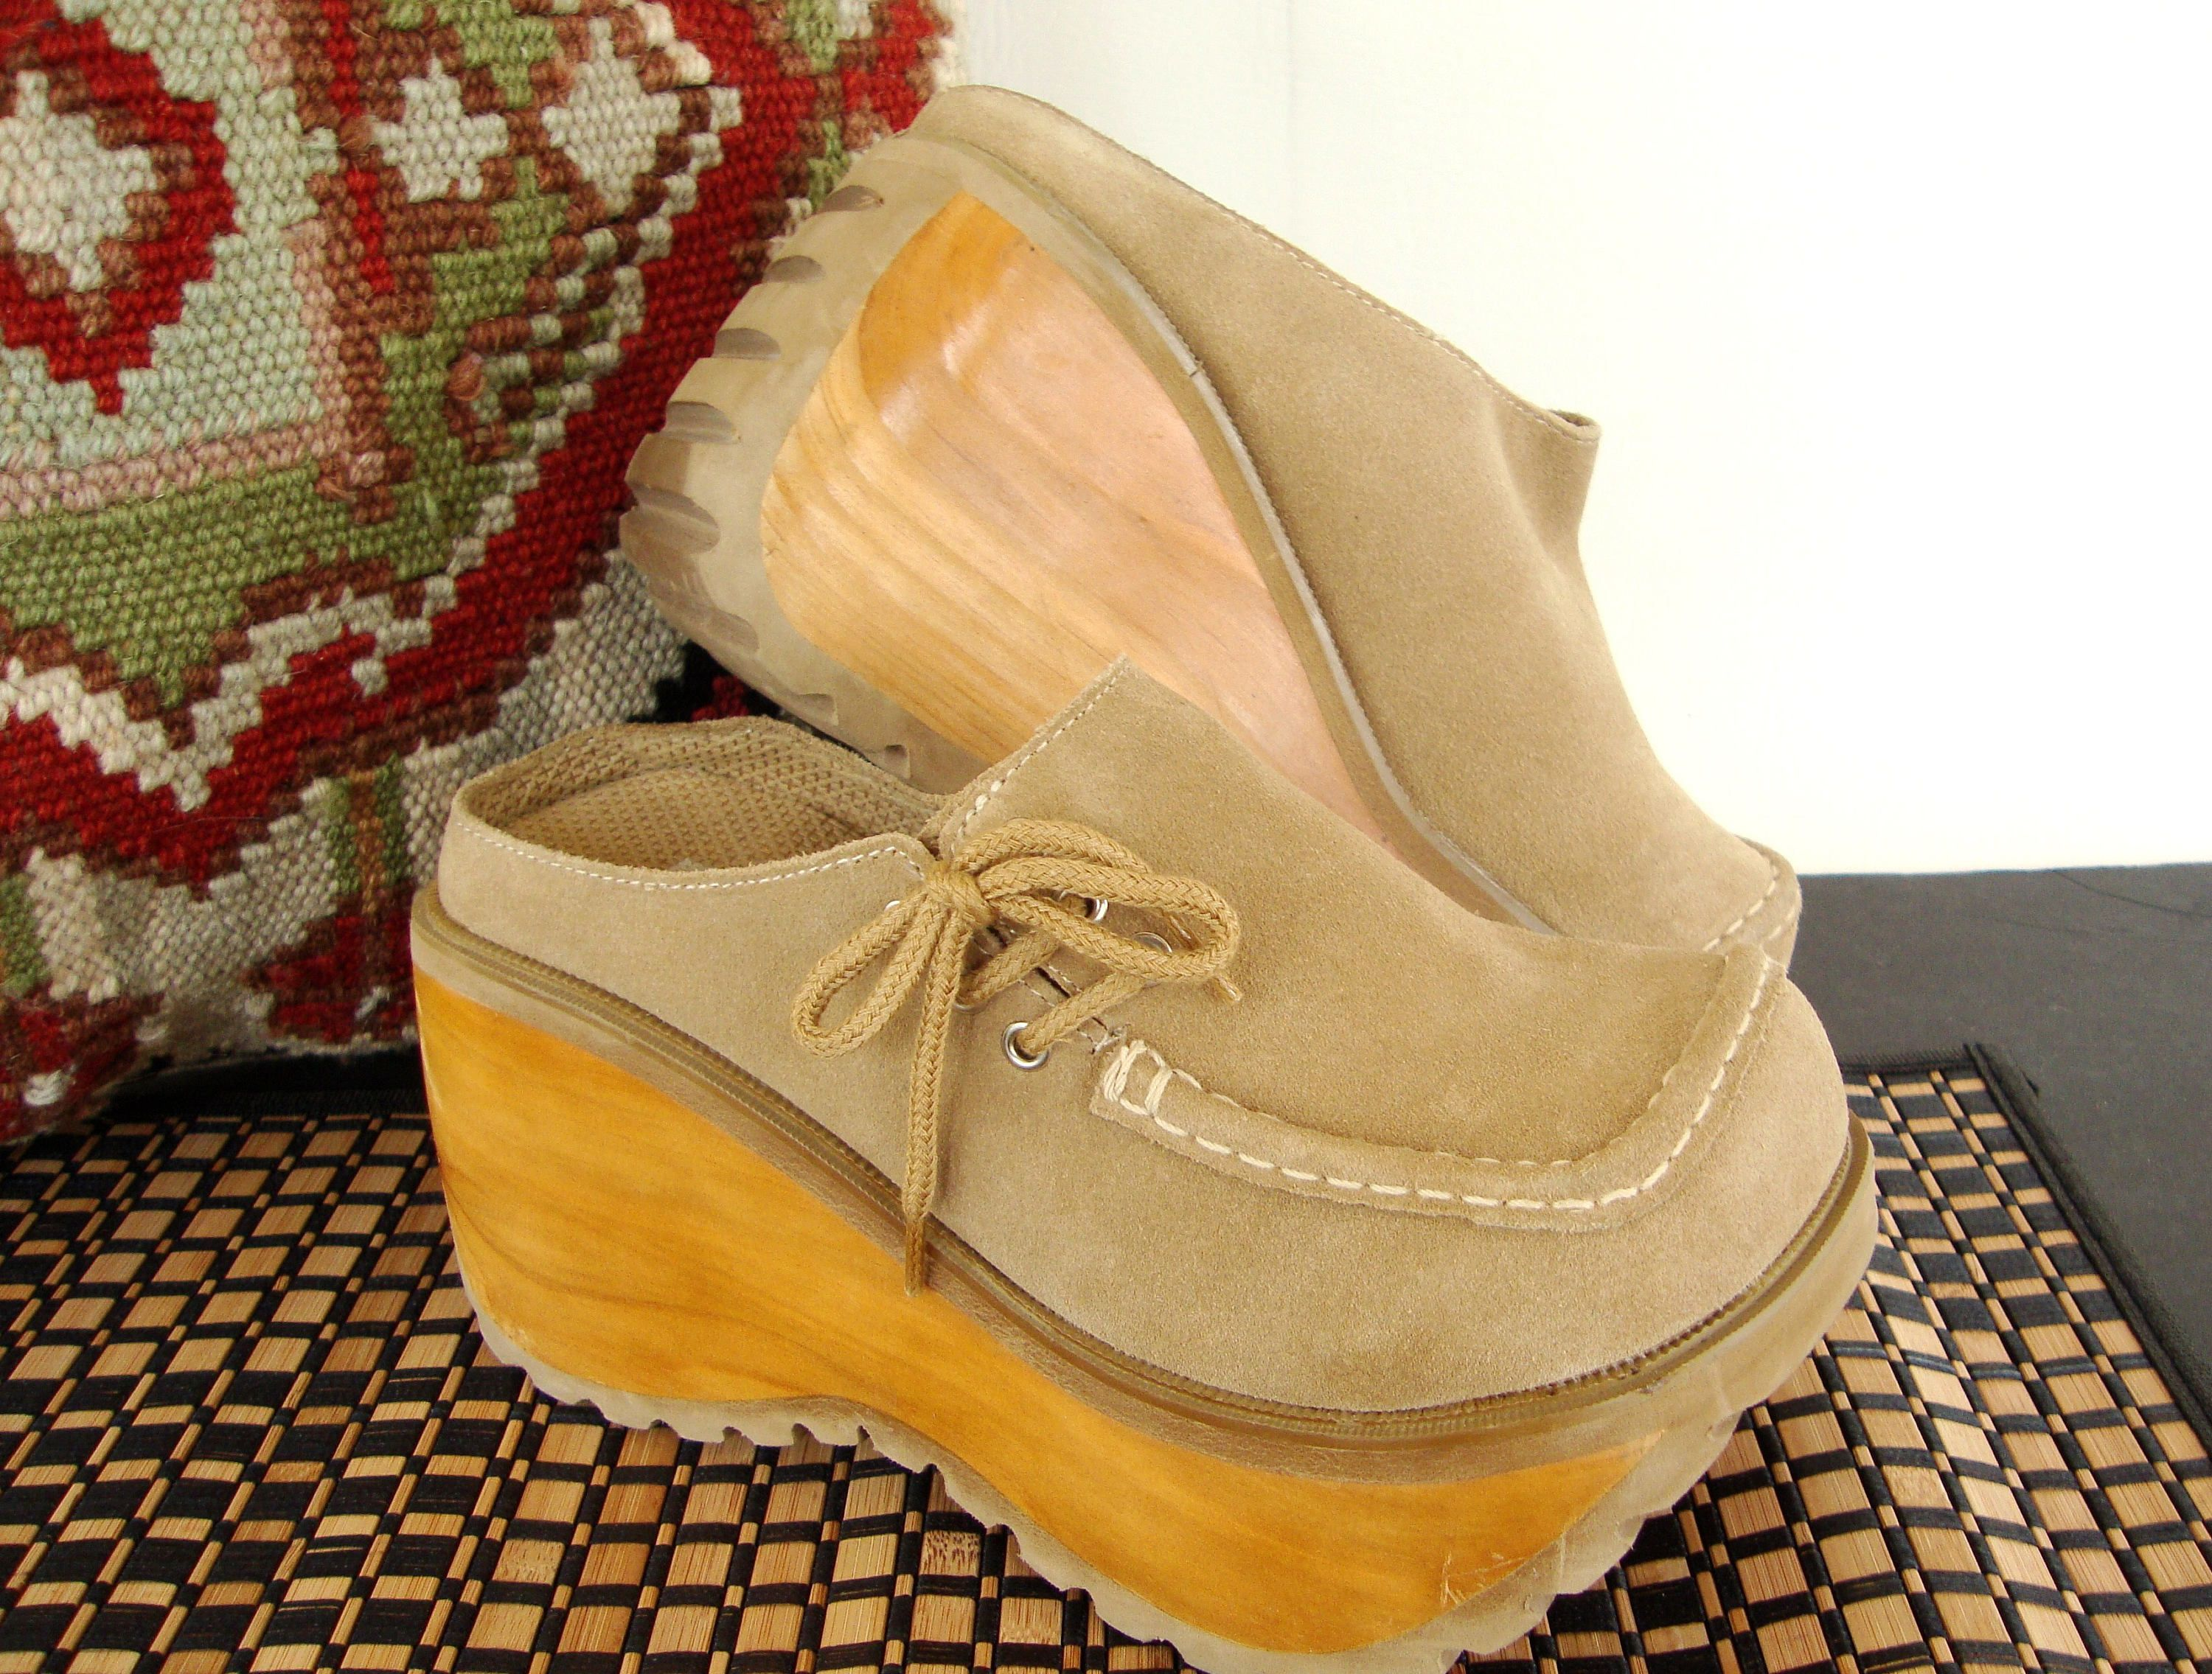 7a6d25bc64ca3 90s Platform Clogs Chunky Suede Tan Leather Wooden Sole Soda Size 7 ...